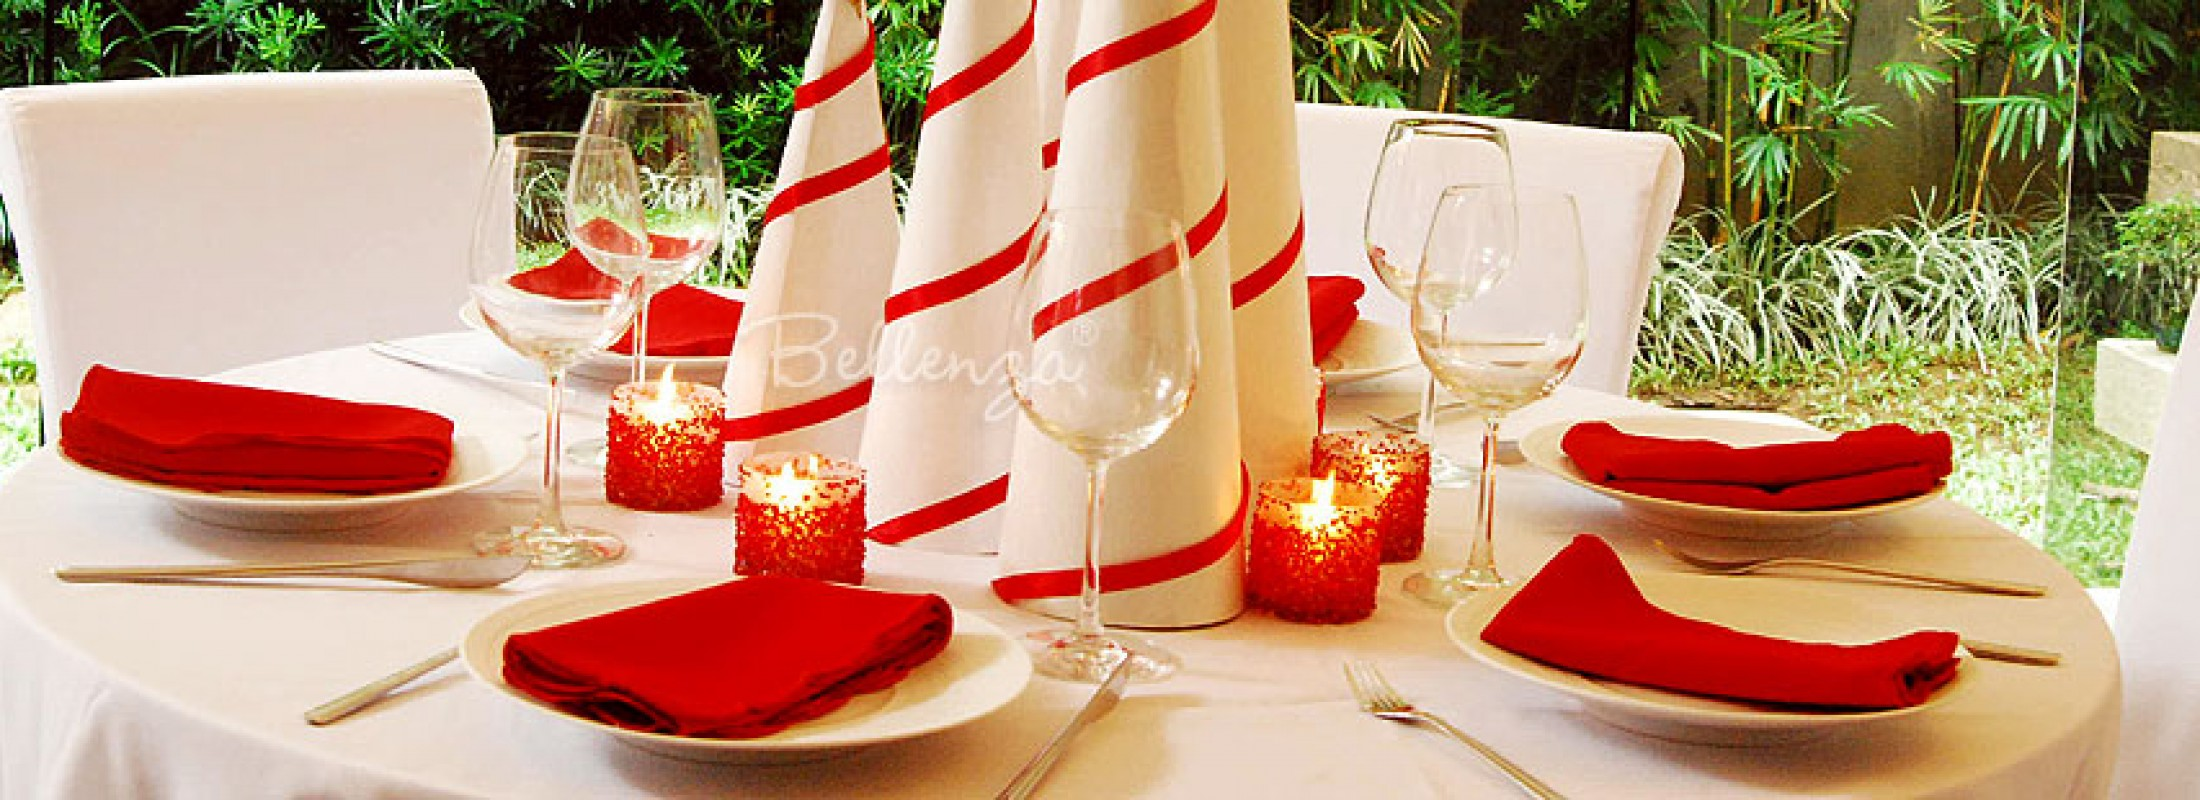 simple yet festive holiday table decorations - Holiday Table Decorations Christmas